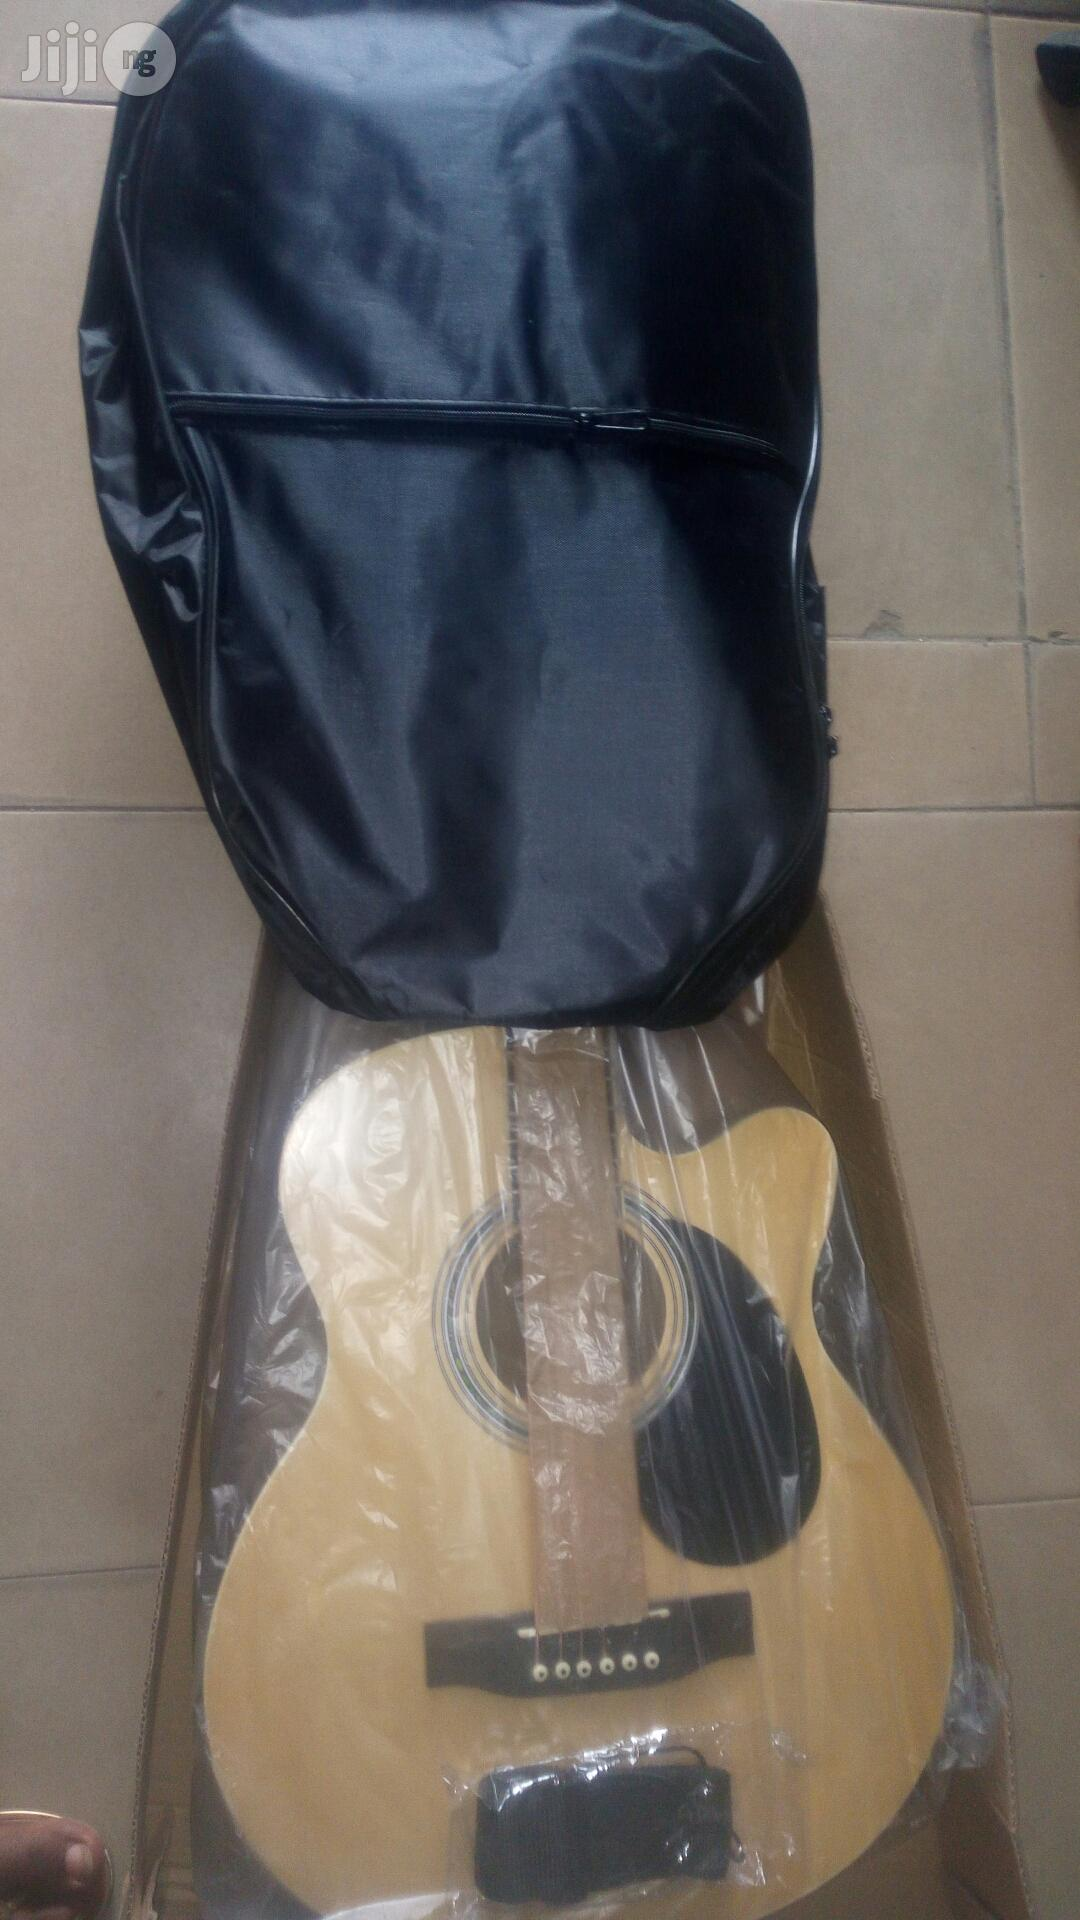 Acoustic Guitar | Musical Instruments & Gear for sale in Port-Harcourt, Rivers State, Nigeria